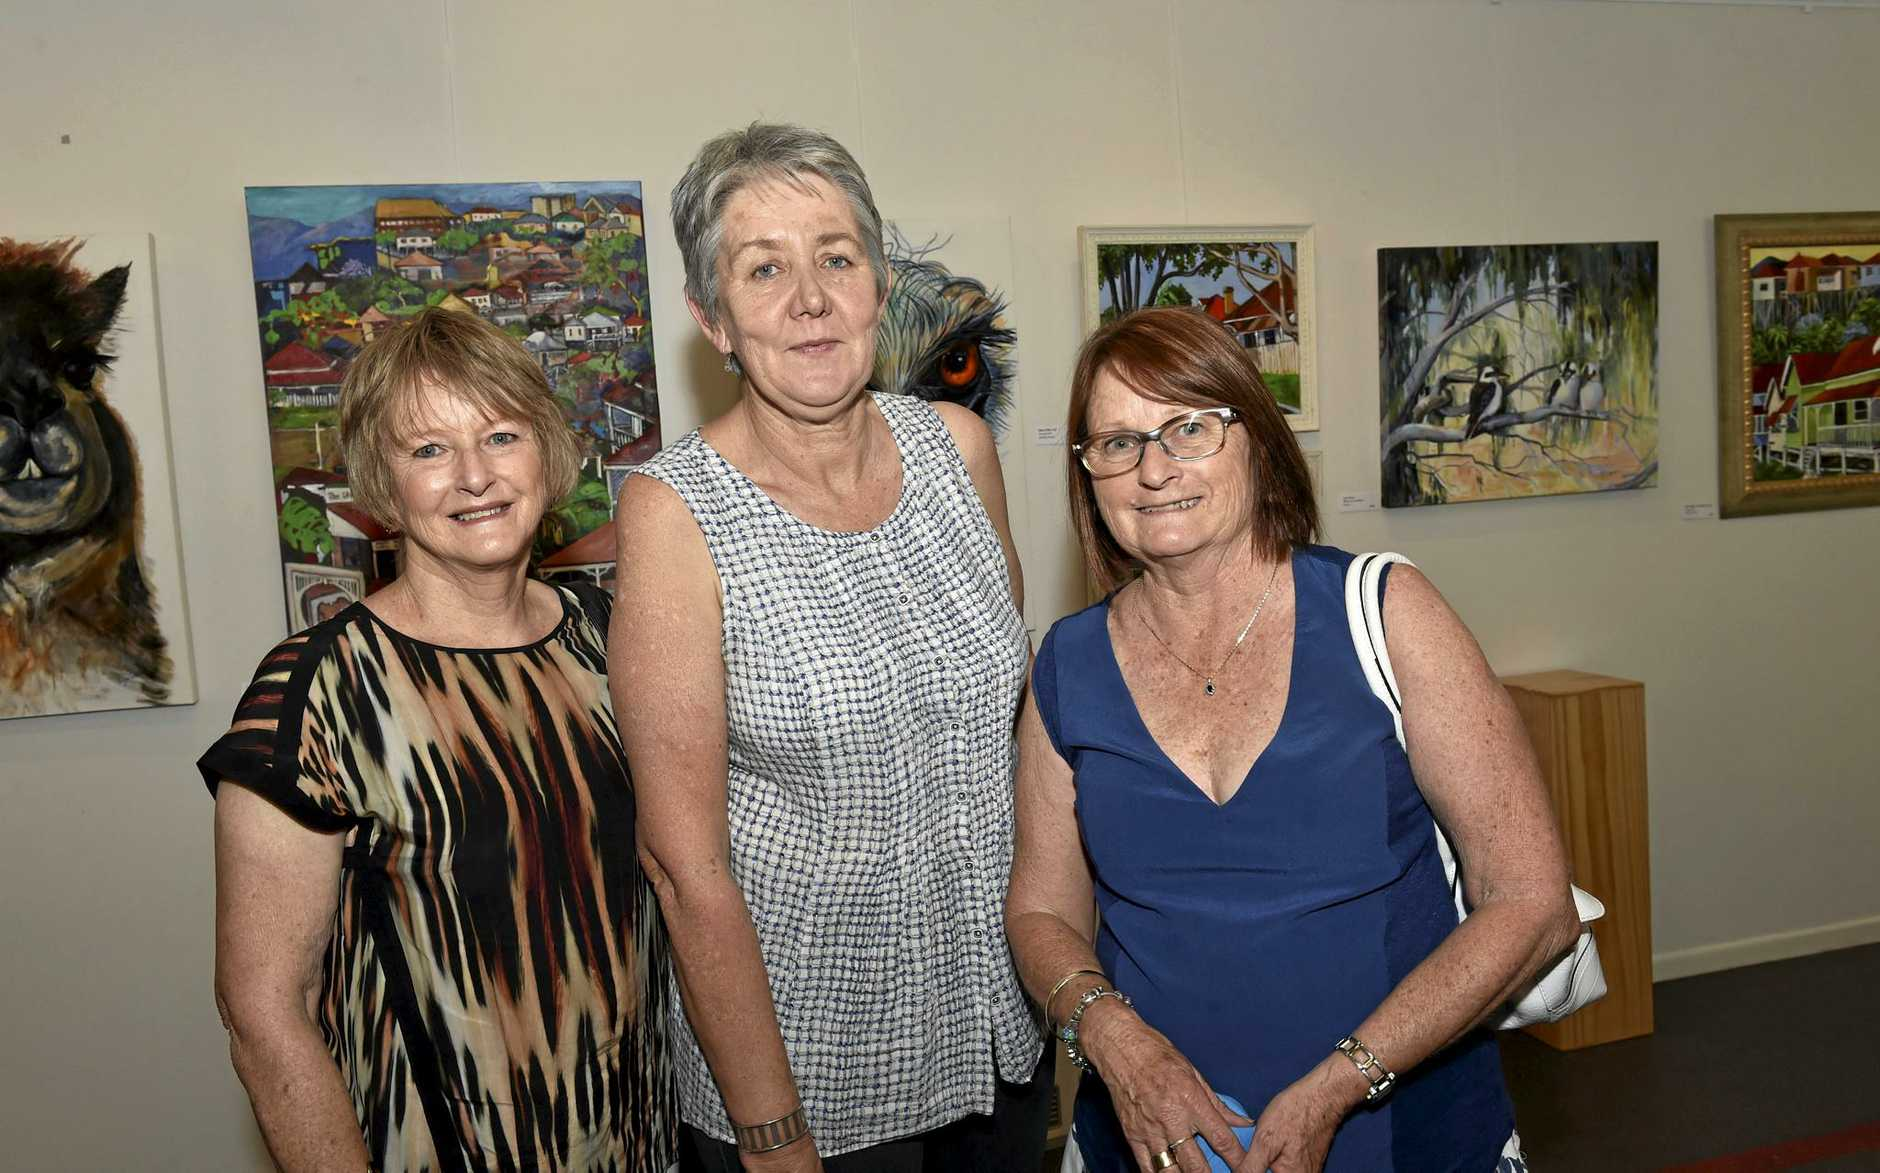 Guests at the opening, from left, Anne Stevens, Janice Gleeson and Brenda Richards. From Country to City, an exhibition of artworks by Ros Cranch & Lyn Watts at the Toowoomba Art Society. November 5, 2016